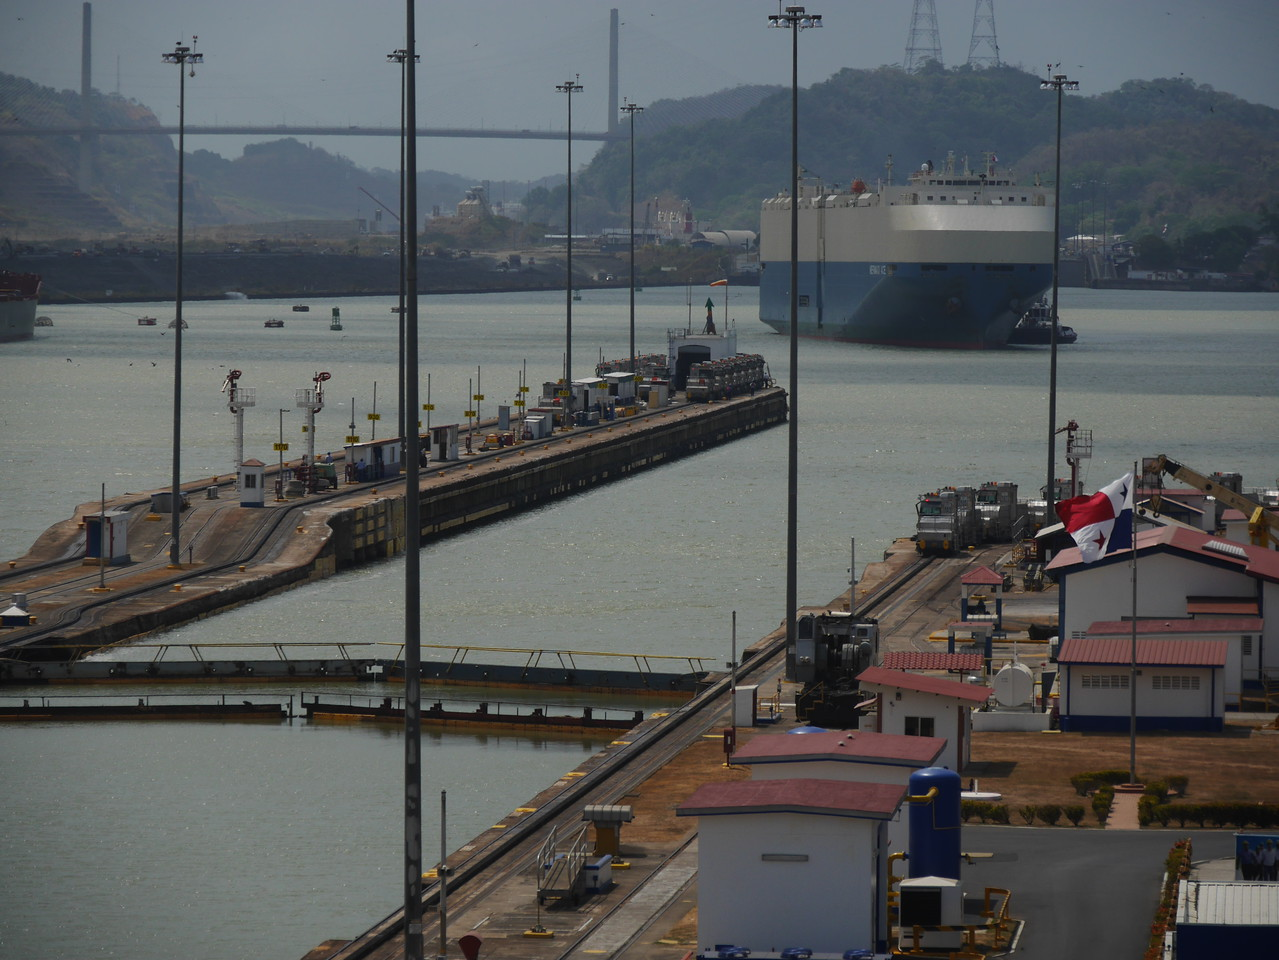 We spent most of a day at Miraflores  Visitors Center watching ships pass through the Panama Canal.